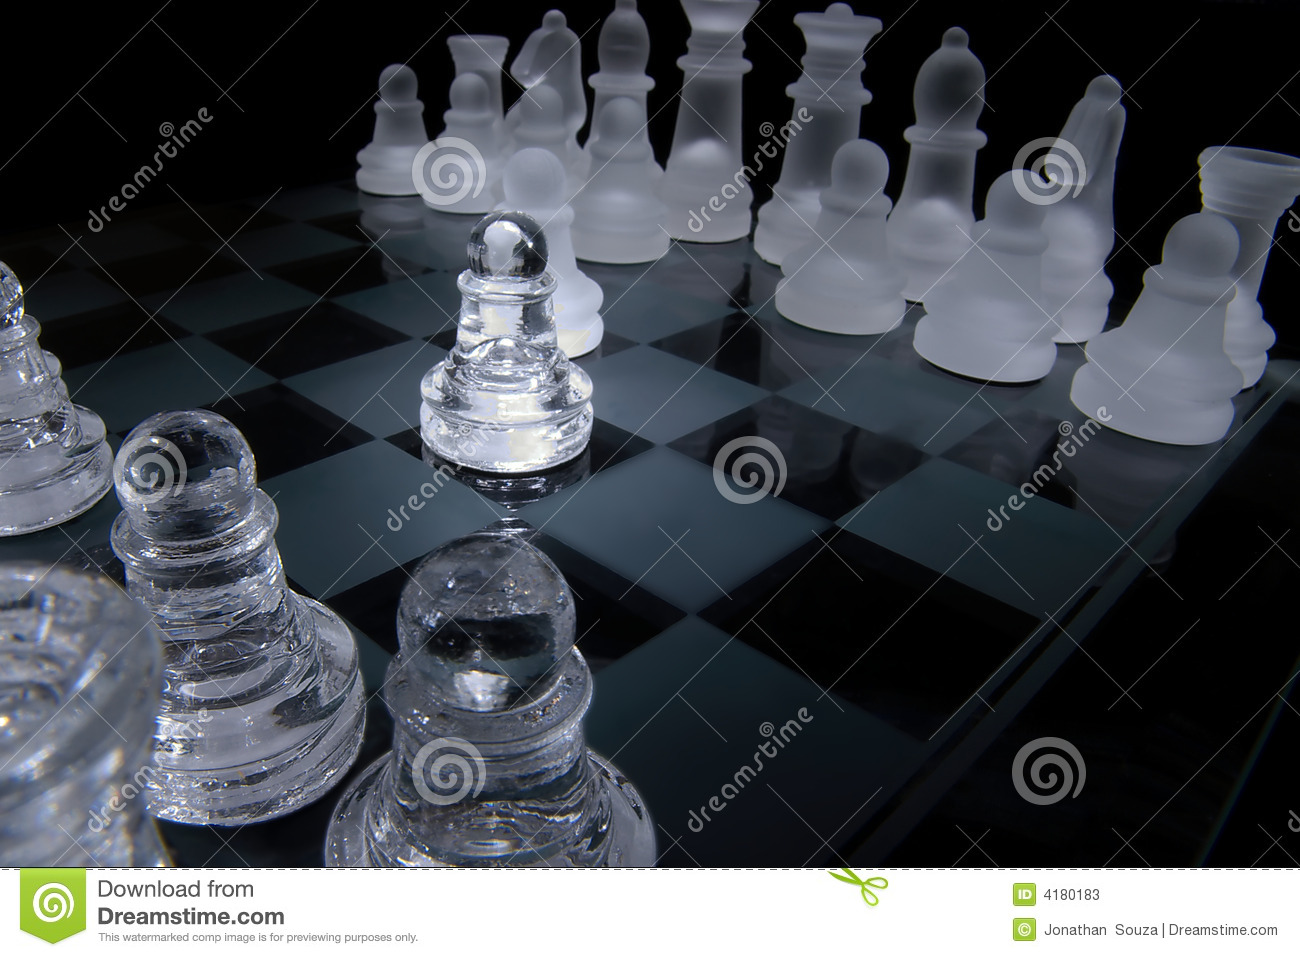 Battle of the pawns